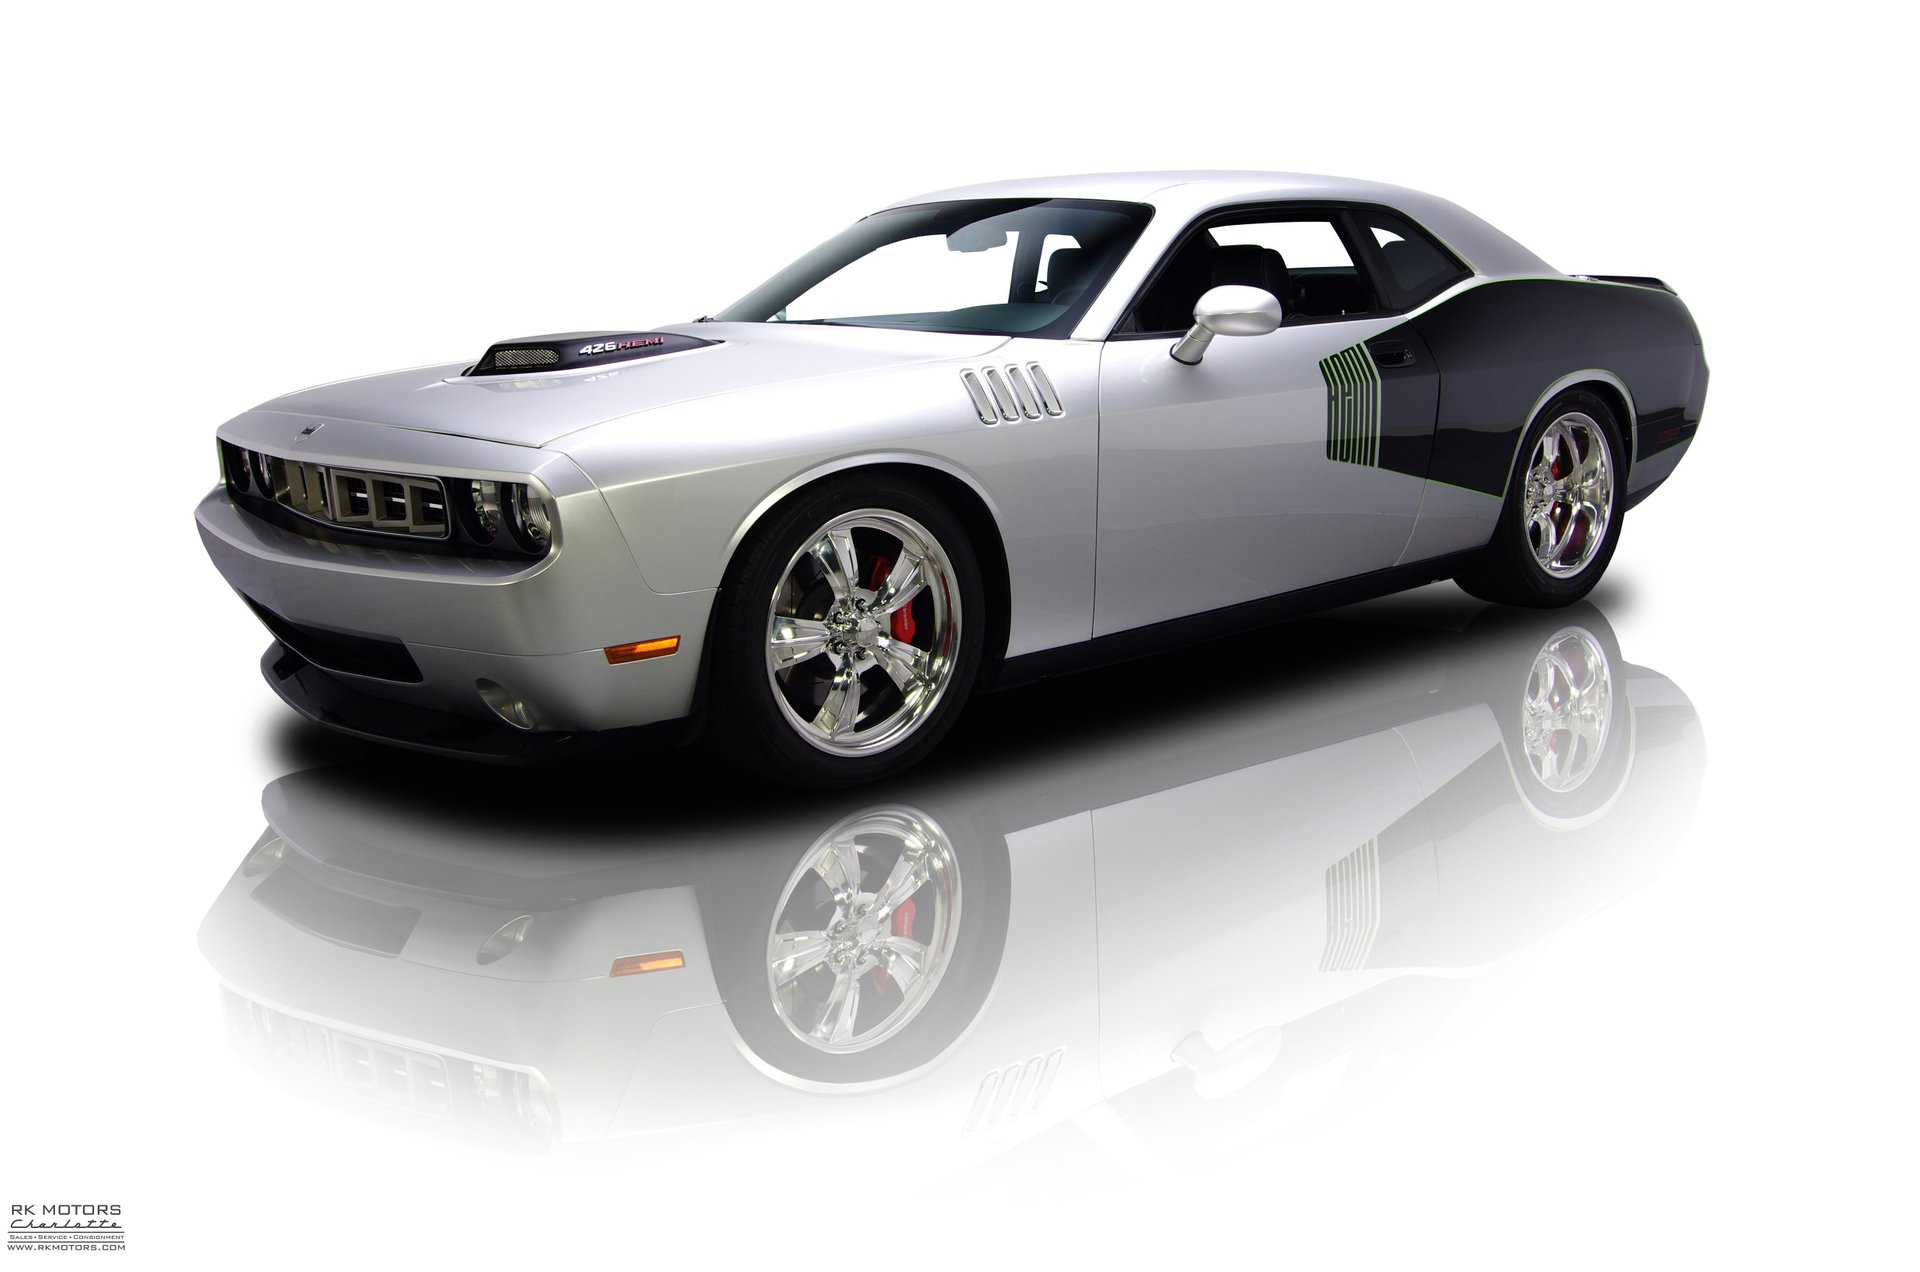 132524 2009 Dodge Challenger Rk Motors Classic Cars For Sale